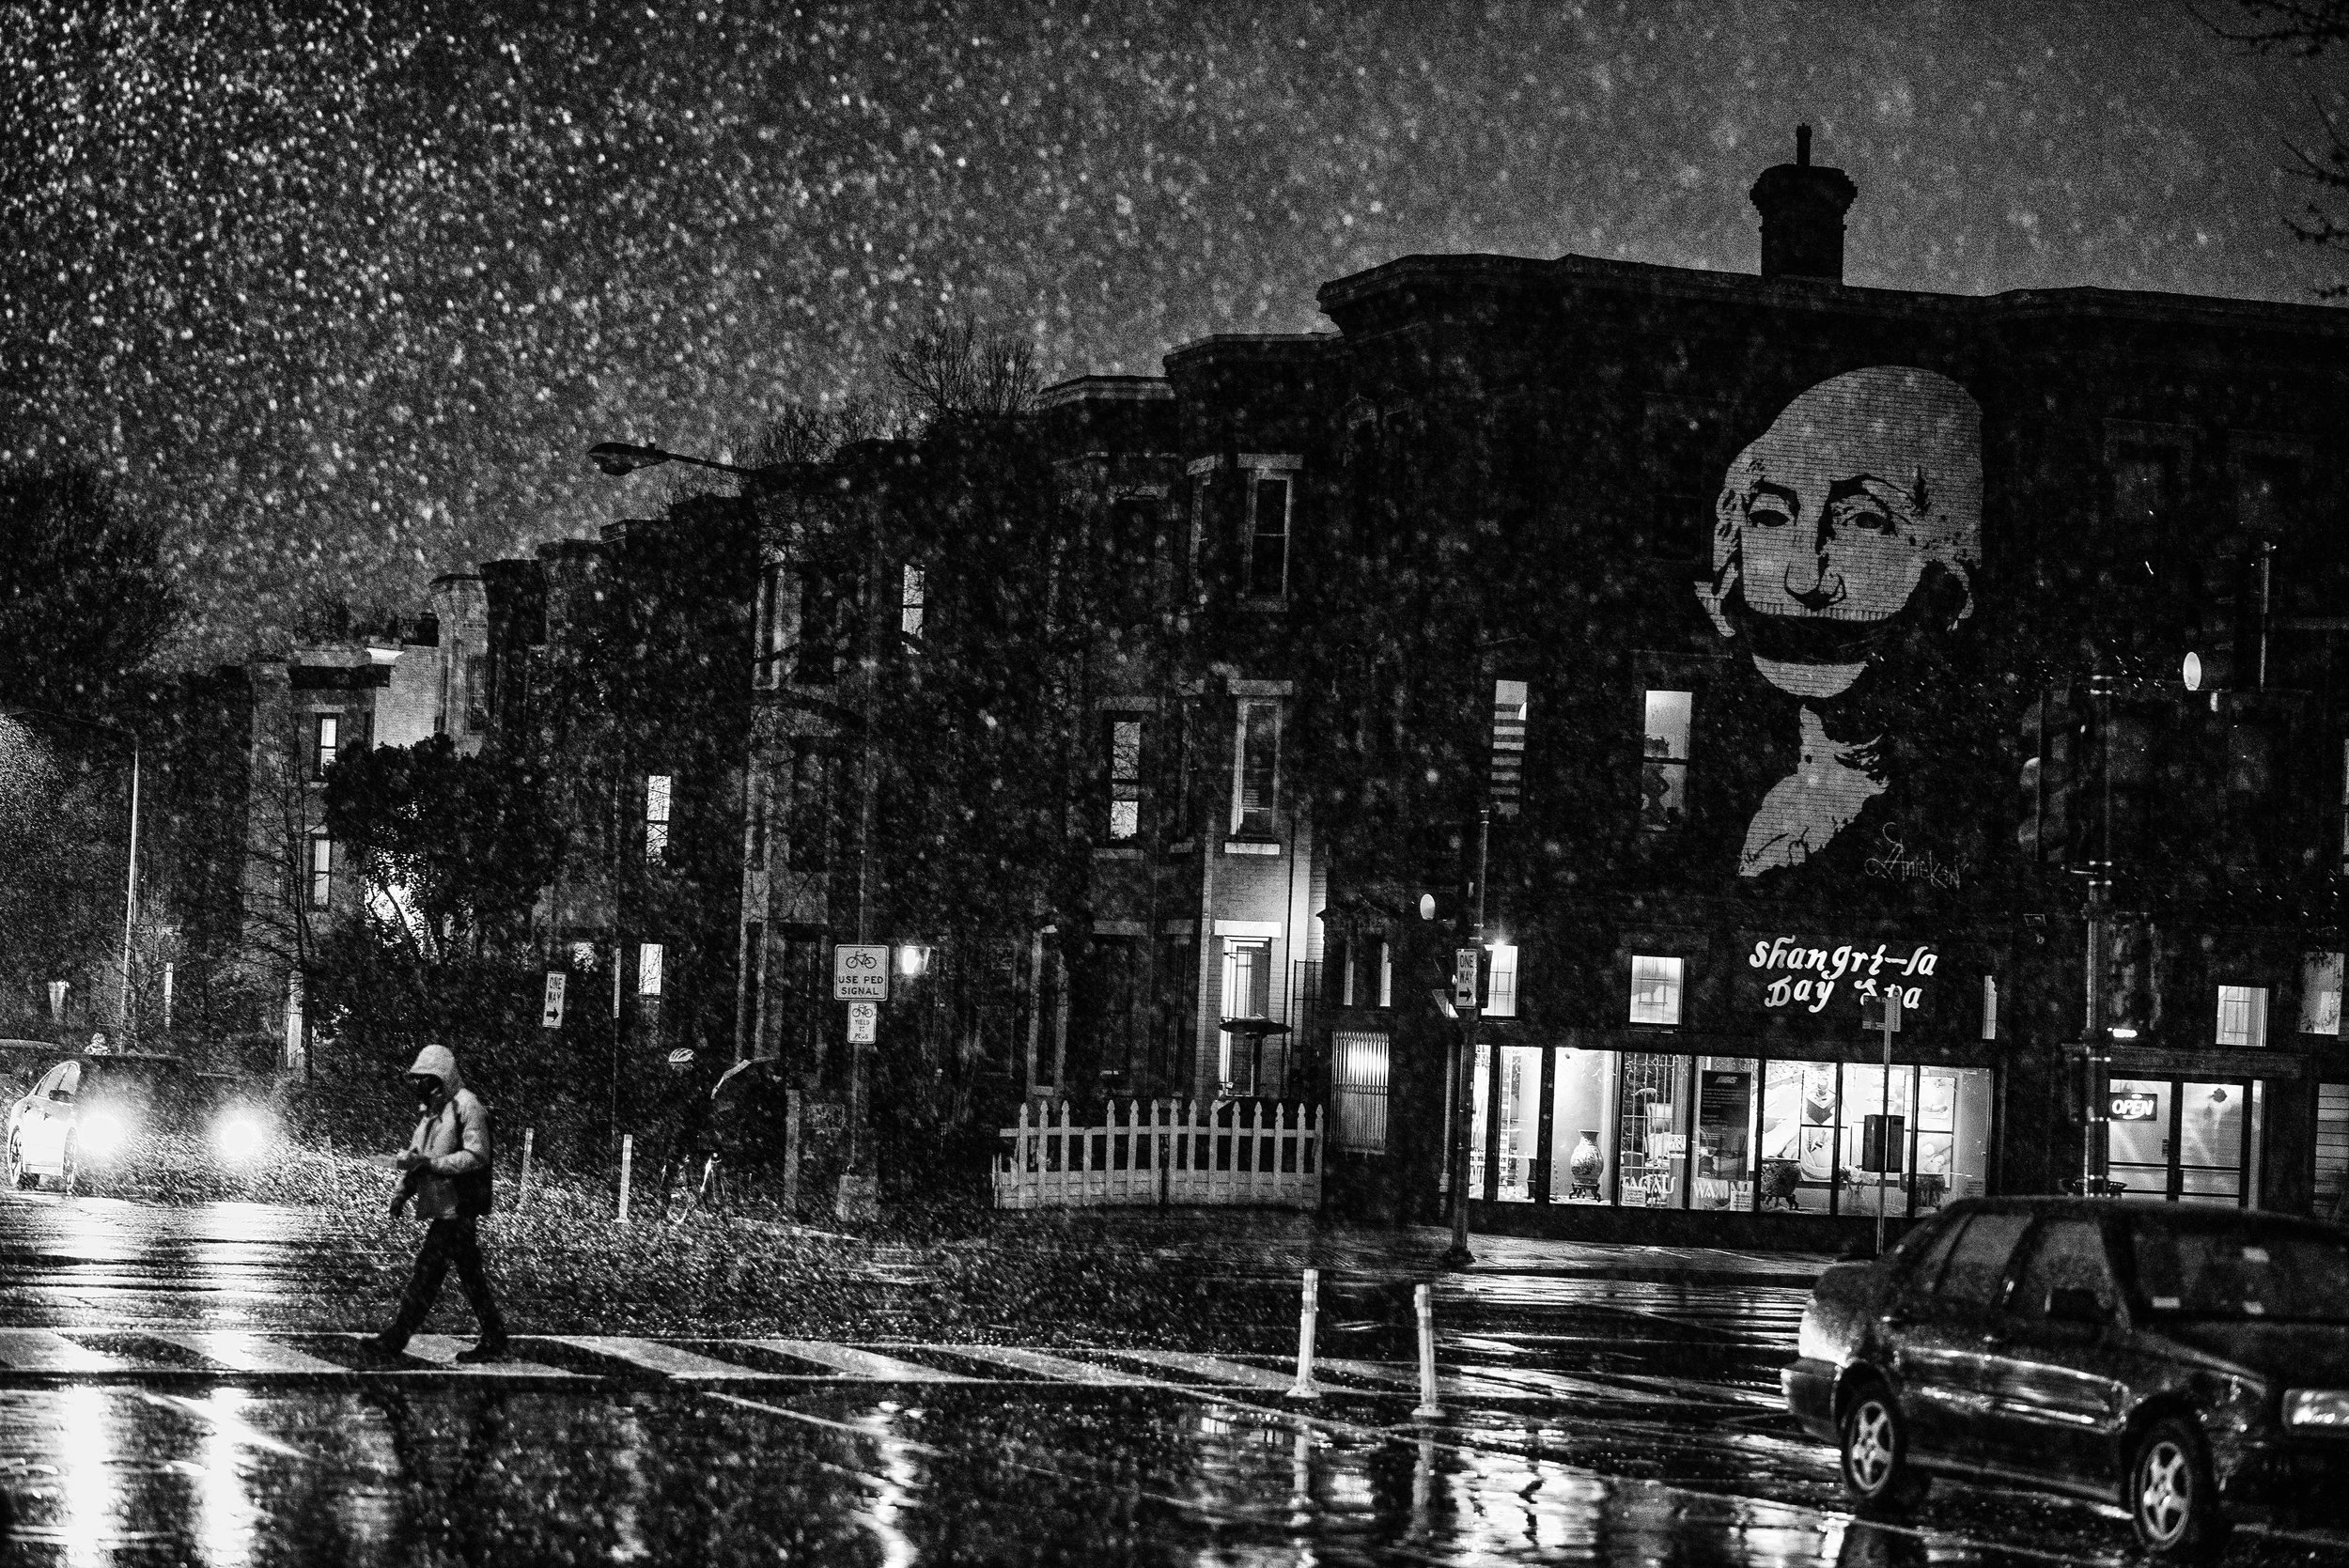 Day 53 : A mural of President George Washington with a gag over his mouth, during a snowstorm in Washington, DC, on March 13, 2017.